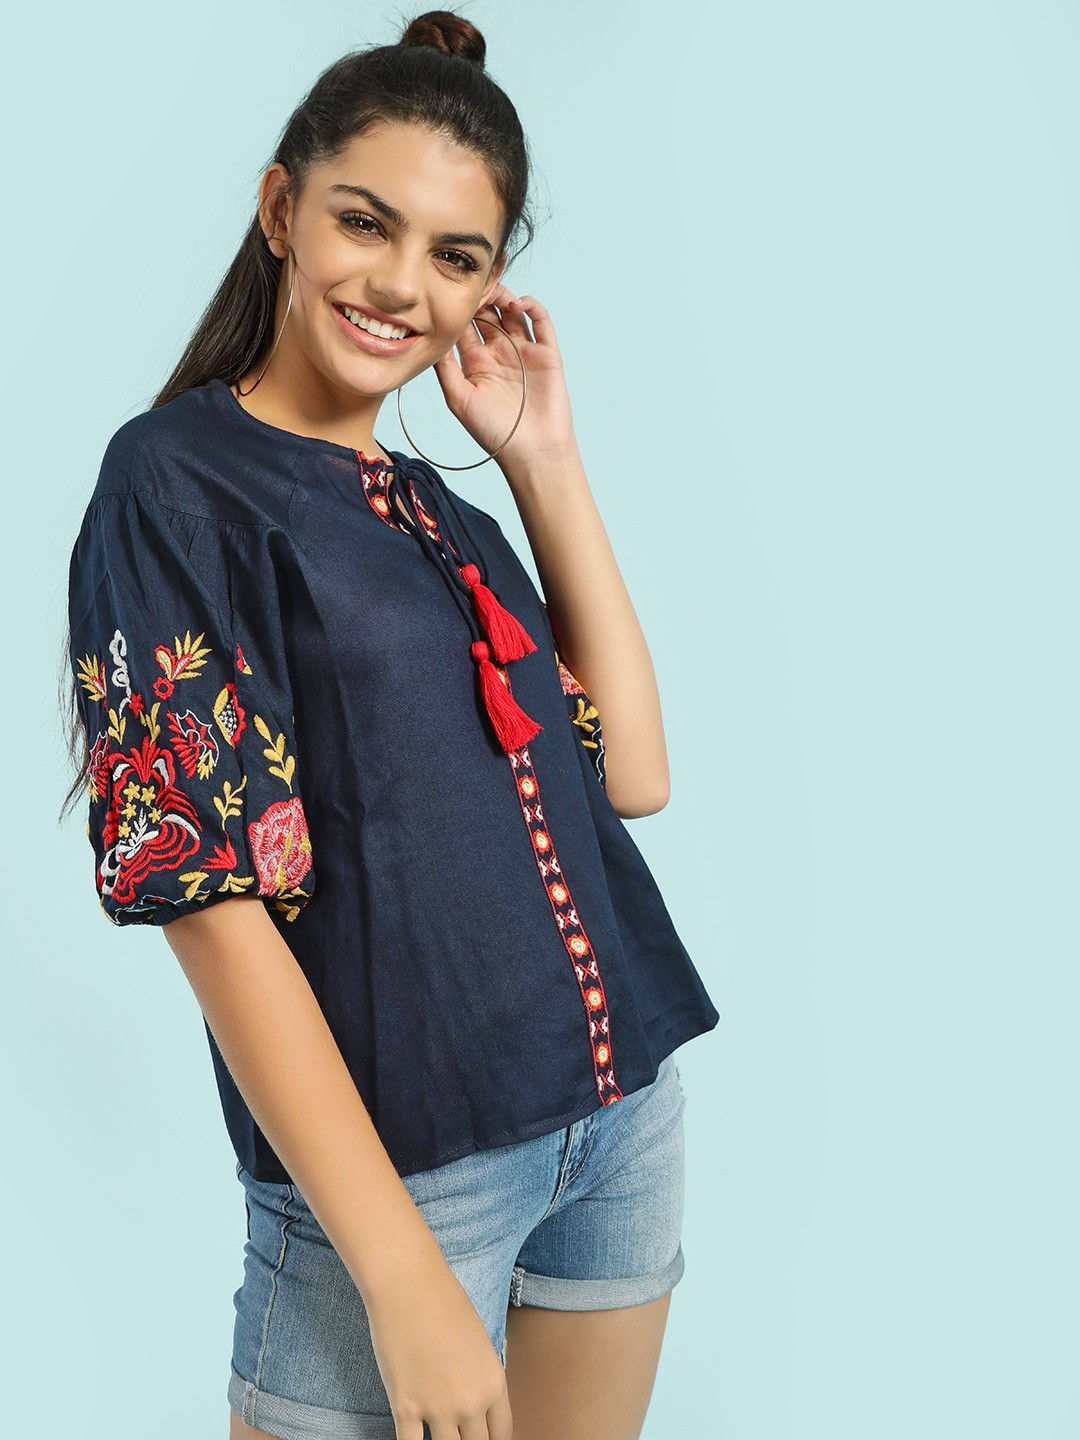 Rena Love Blue Floral Embroidered Blouse 1